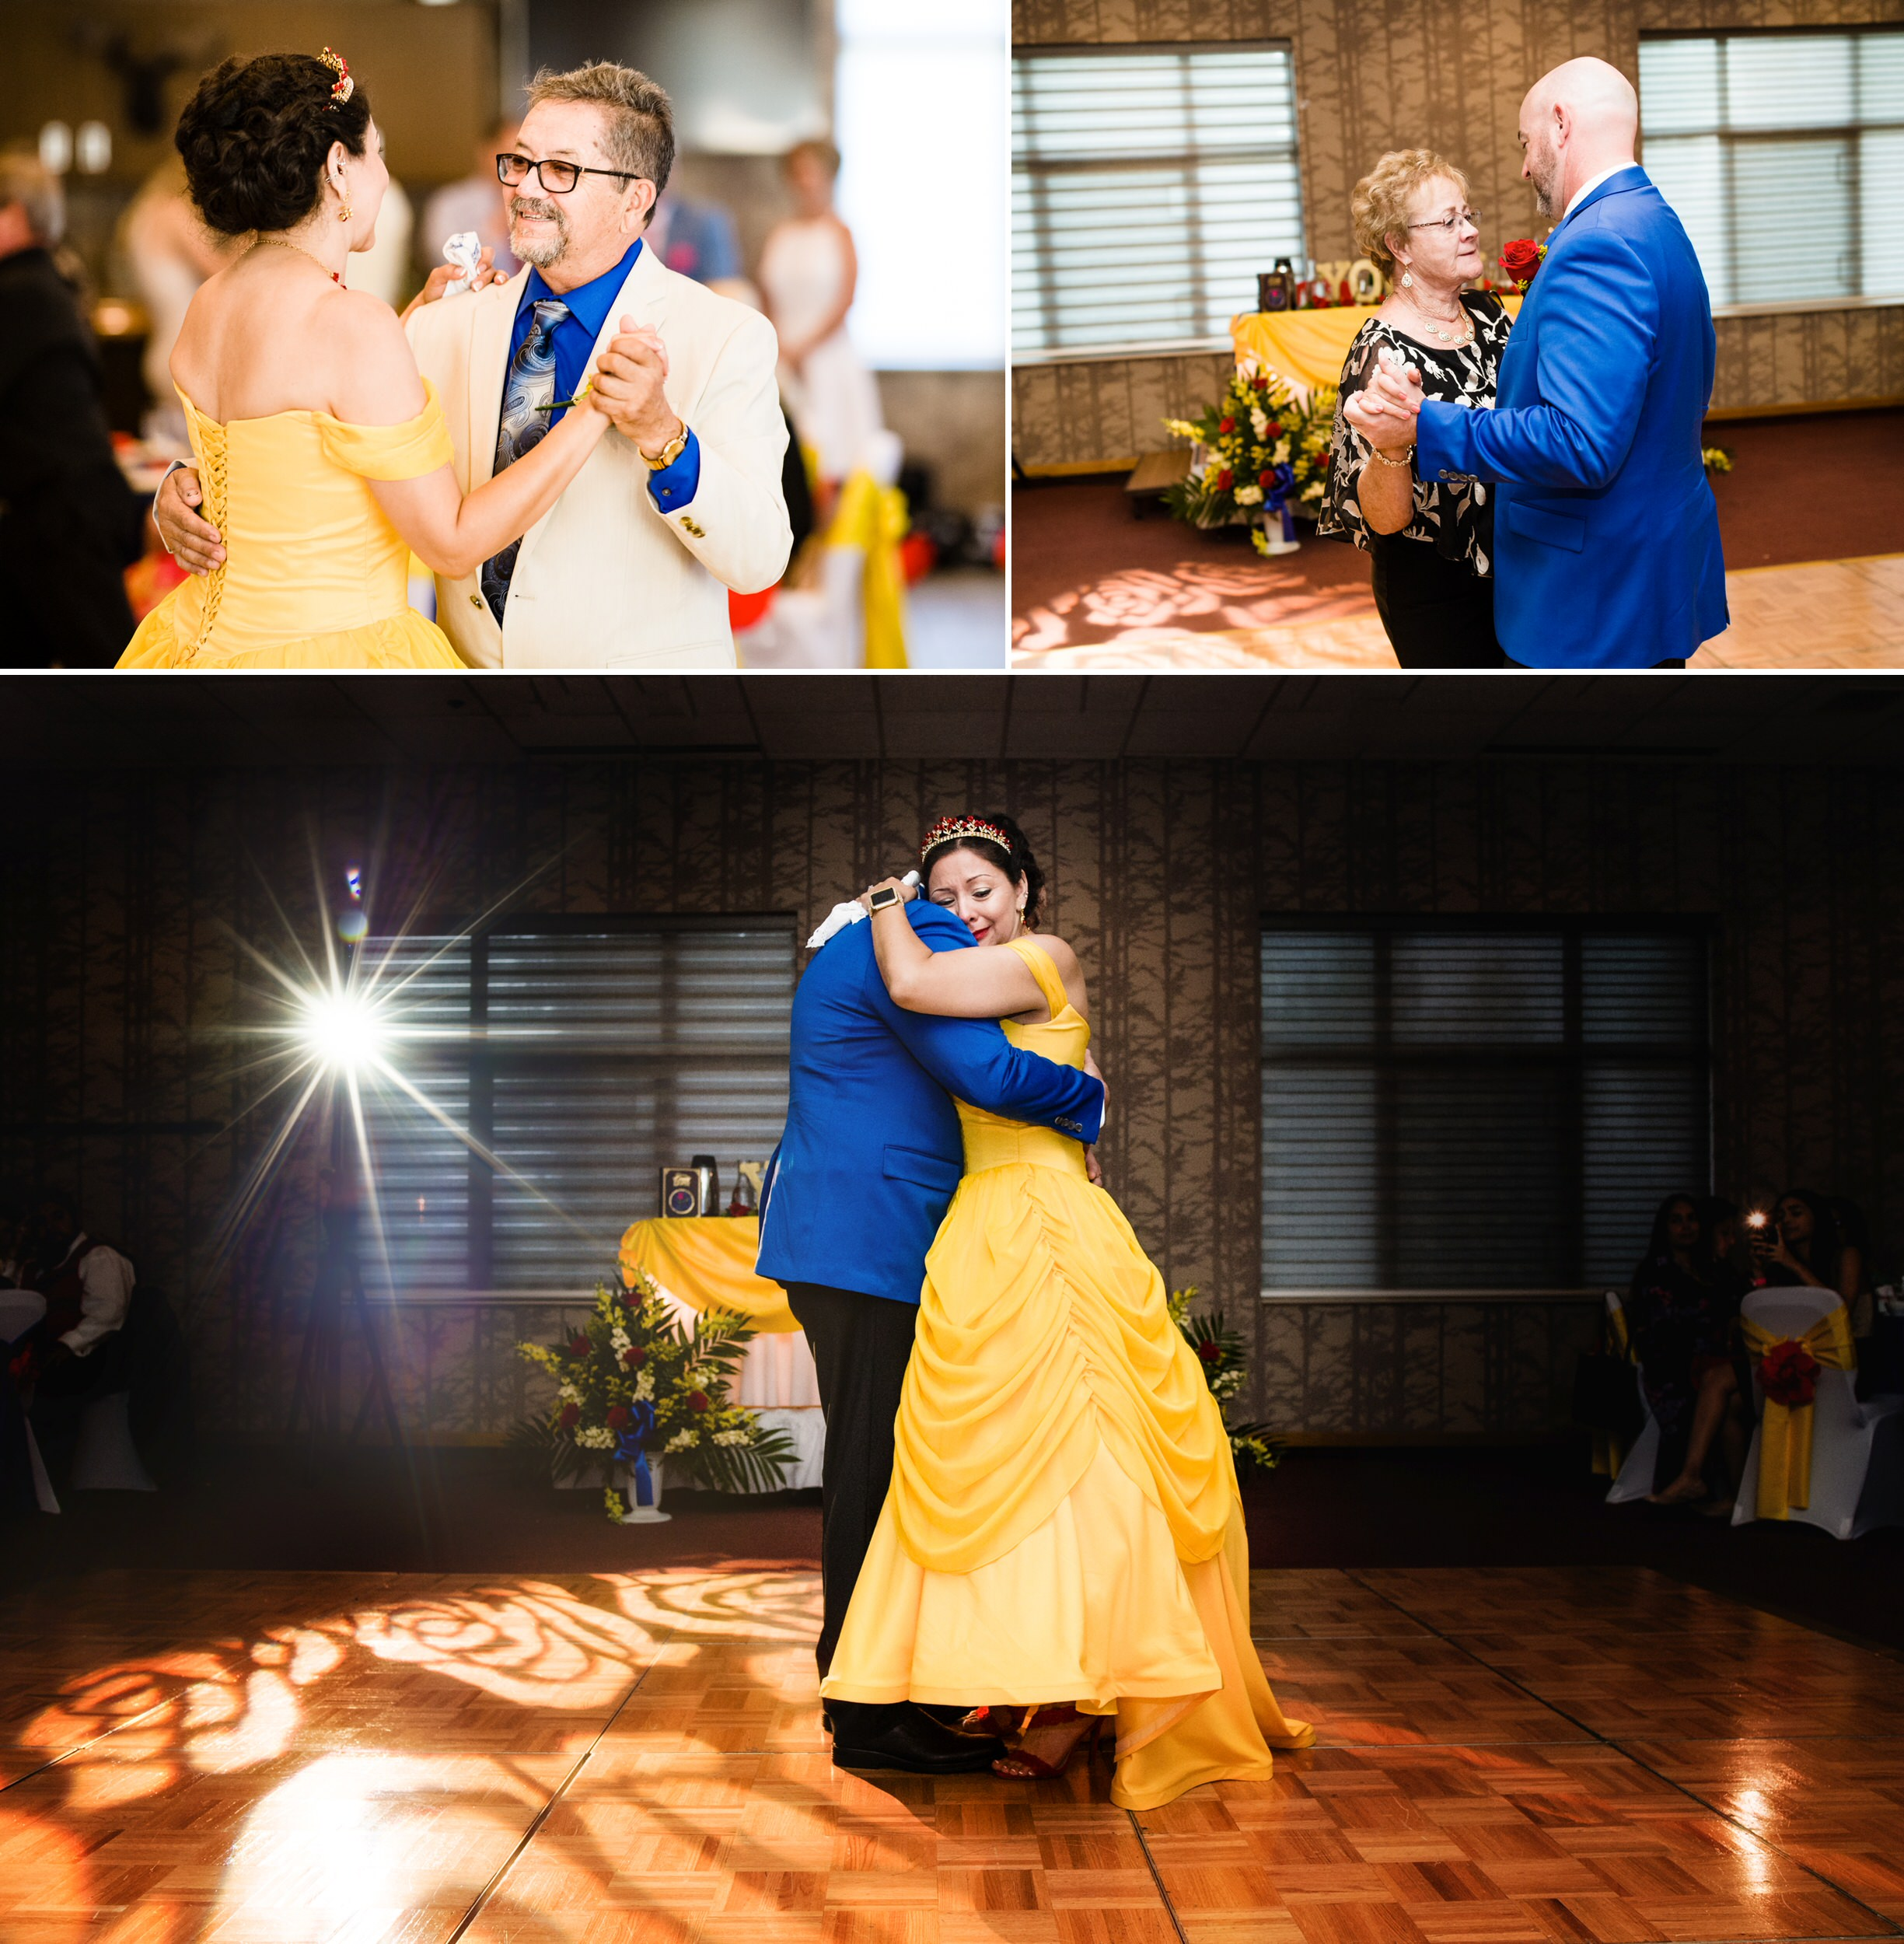 First dances at Villa Cesare in Schererville, IN at a Disney themed wedding reception.